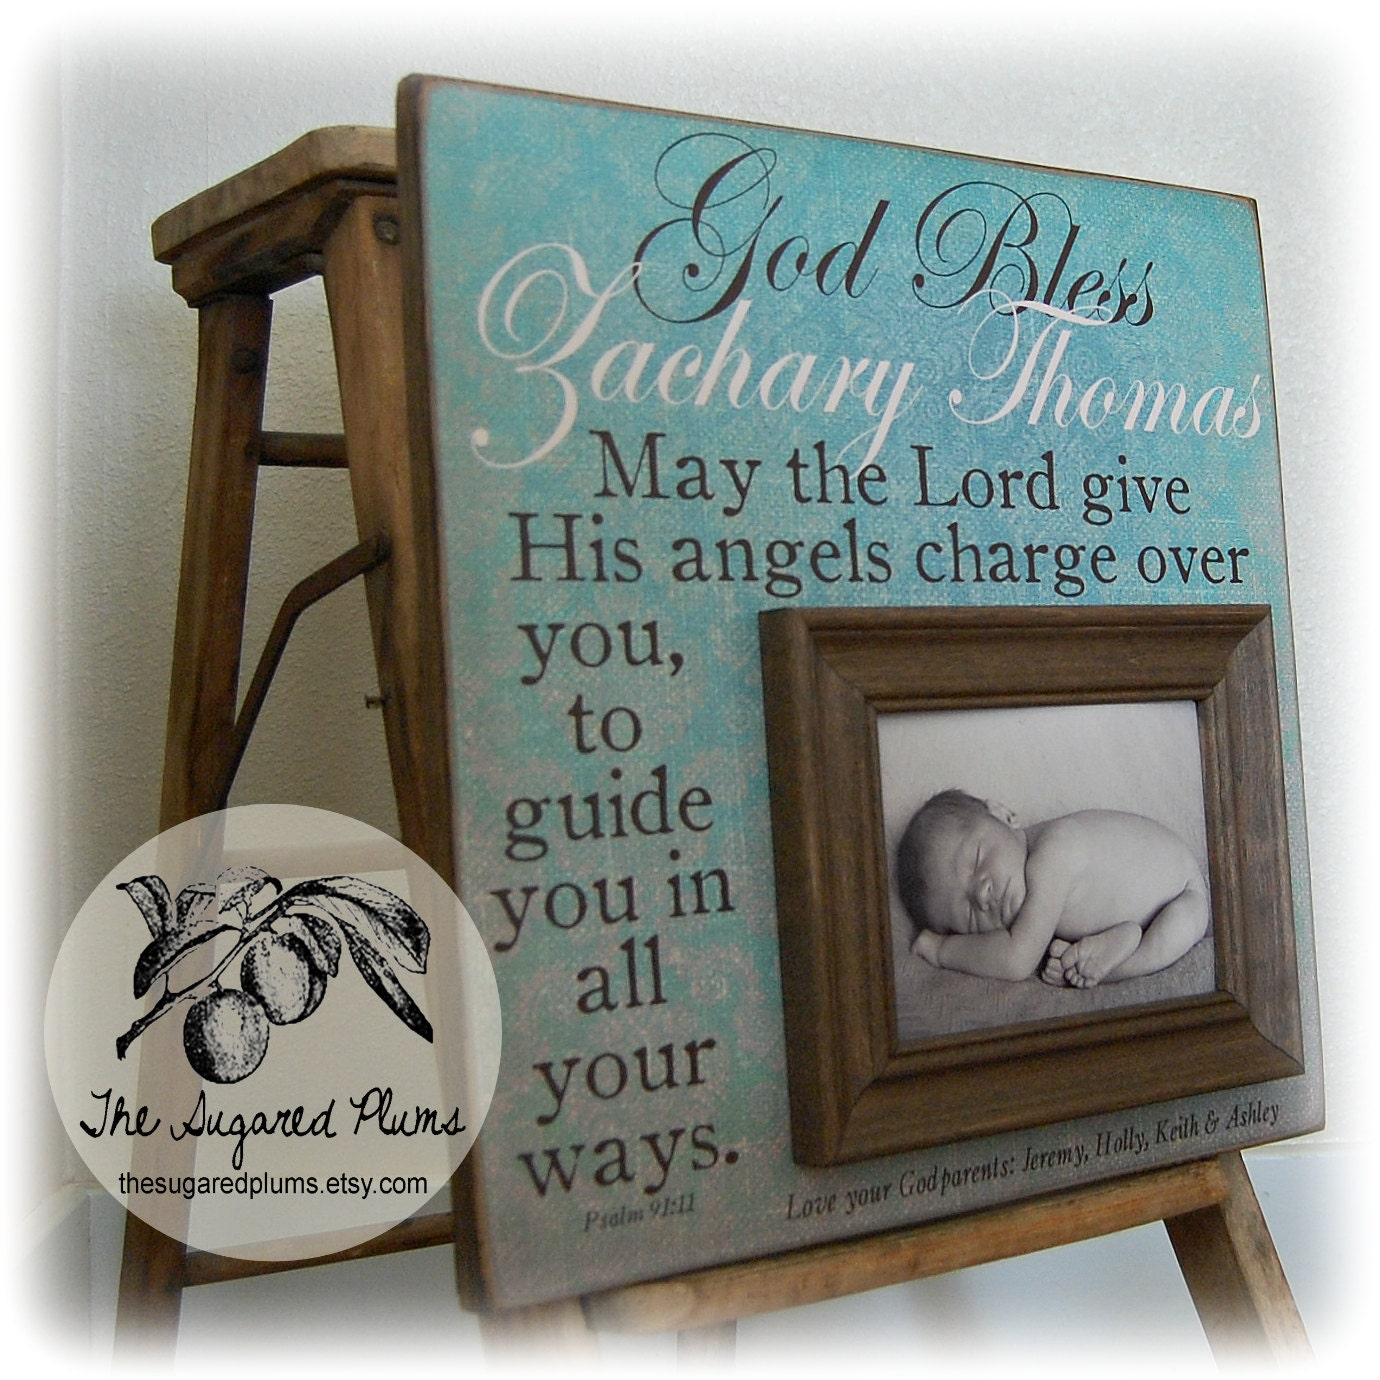 Unique baptism gift baptism gift from godparent baptism - Gifts for baby christening ideas ...